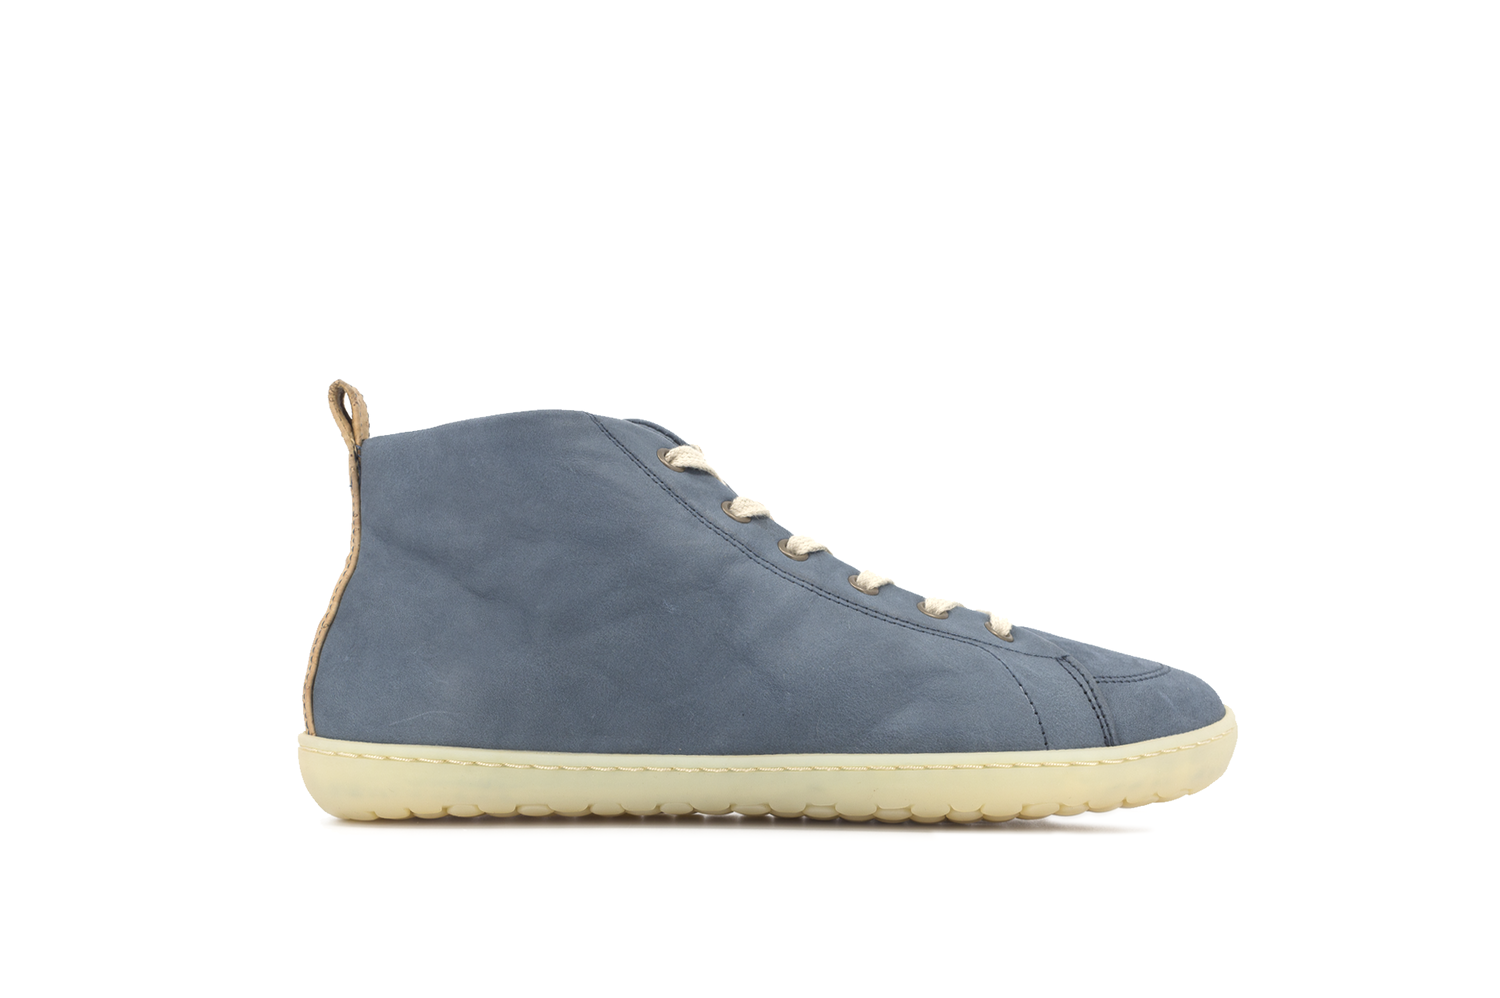 Barefoot Barefoot boty MUKISHOES High-cut RAW LAETHER Blue FW bosá